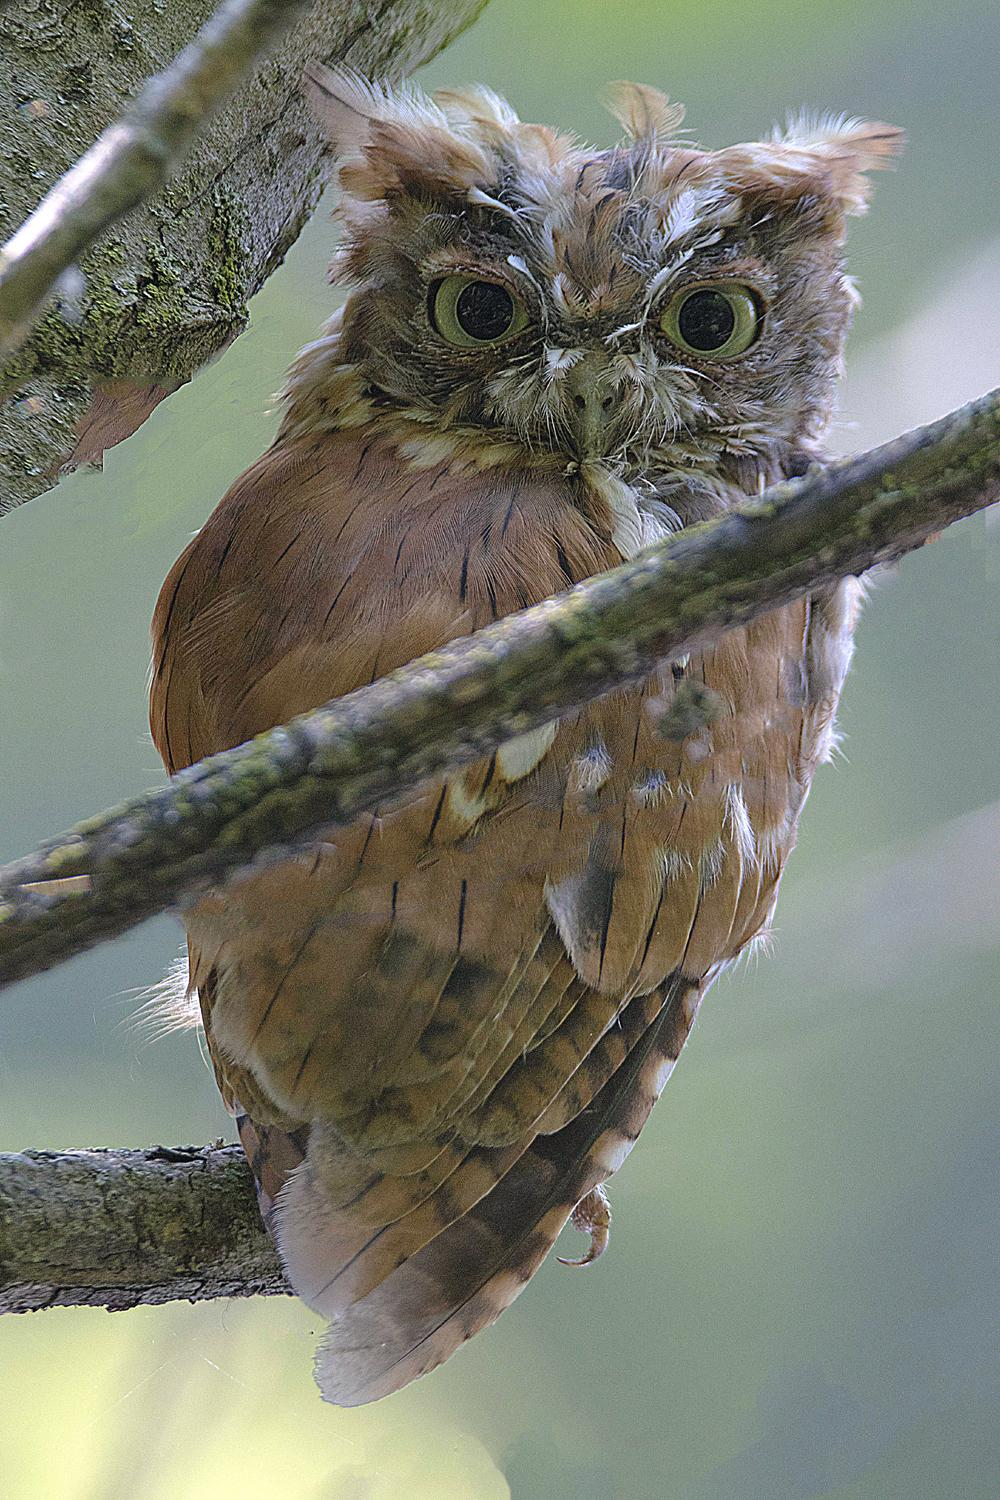 Eastern Screech-Owl. Photo: Ali Pashang